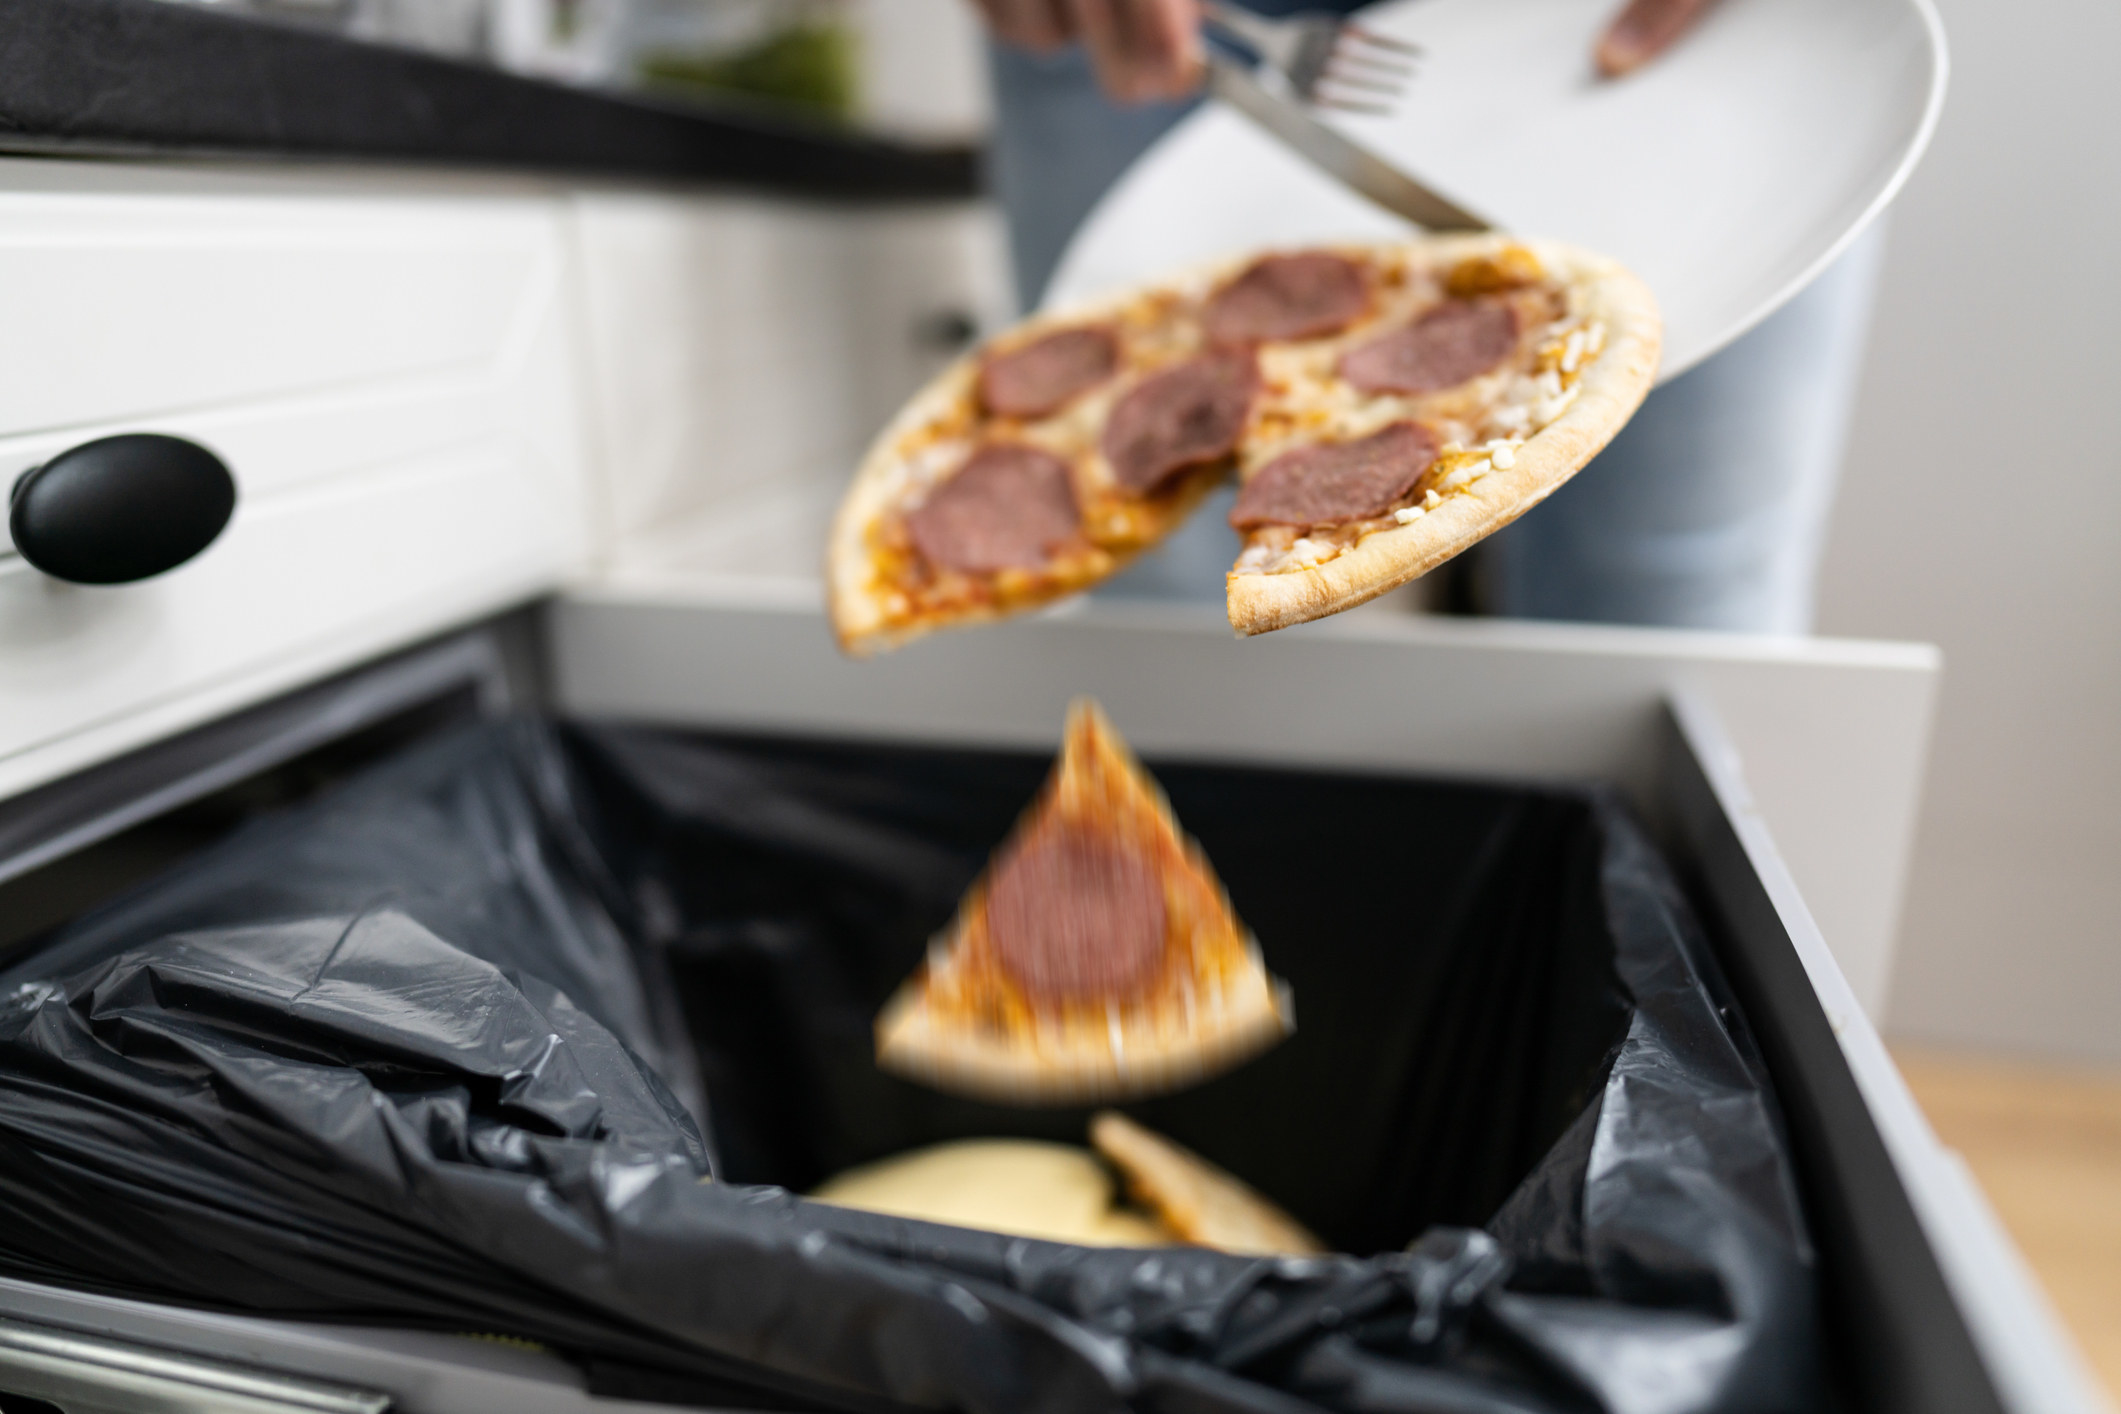 Pizza being thrown out in the trash